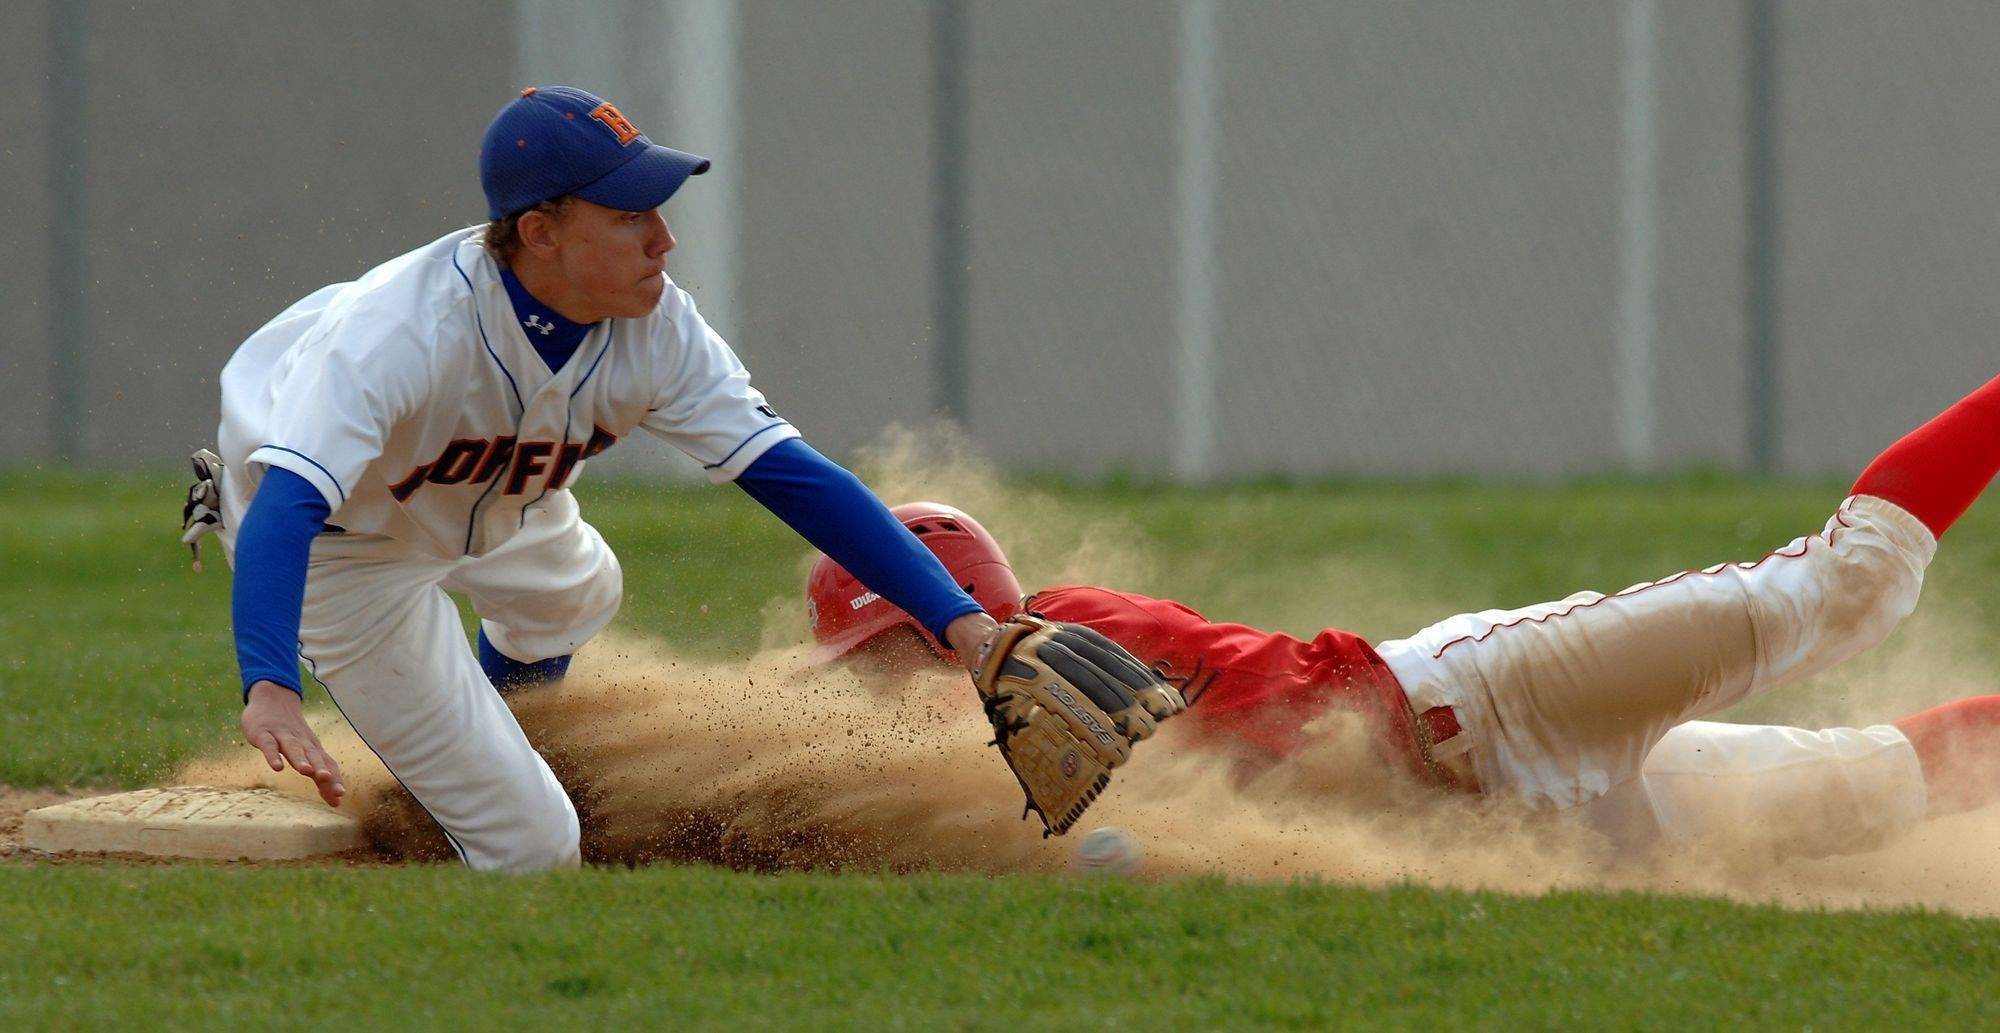 Hoffman Estates' Trent Rehusch covers third after Palatine's Cody Bobbit slides in for a triple during Monday's game.